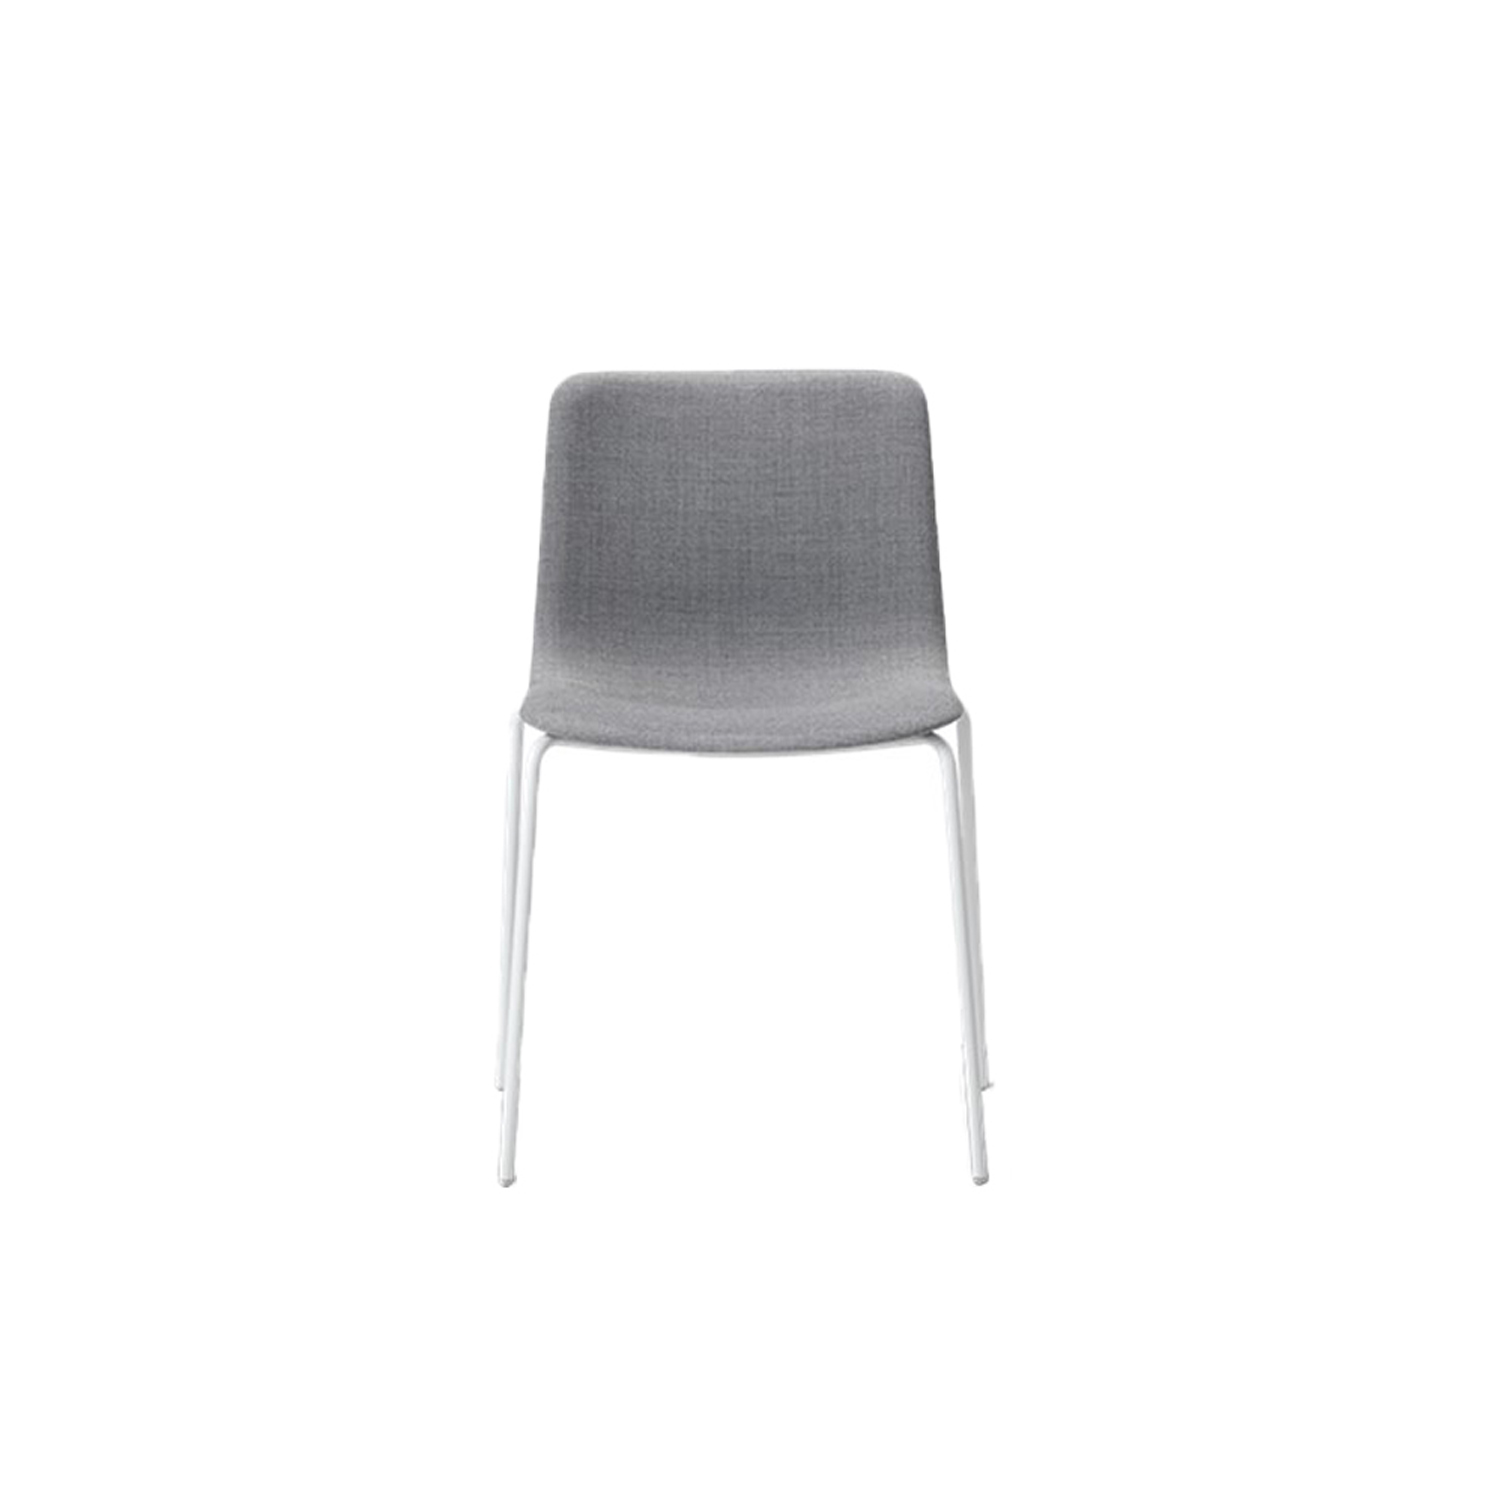 Pato 4 Leg Tube Base Chair Fully Upholstered - Pato is a carefully crafted multipurpose chair in eco-friendly polypropylene that can be used outdoors. The chair is available with a range of optional features including coupling. The chair can be tuned from basic to exclusive with optional upholstery.  Pato is a prime example of our focus on sustainability and protecting the environment, reflected in a chair that's 100% renewable and recyclable. All components can be incorporated into future furniture production, thus contributing to a circular economy by minimising the use of materials, resources, waste and pollution.   Merging traditional production methods with cutting-edge technology, Pato is a human-centric, highly versatile series of multi-purpose functional furniture that draws on our in-depth experience with materials, immaculate detailing and heritage of fine craftsmanship. Allowing us to apply our high standards of texture, finish and carpentry techniques to an array of materials in addition to wood for products aimed at a mass market.   With its clean lines and curves, Pato echoes the ethos of Danish-Icelandic design duo Welling/Ludvik. Demonstrating their belief that good design has the ability to be interesting, even when reduced to its most simple form. Where anything extraneous is eliminated and every detail has a purpose.   Together we spent nearly three years developing the shell structure to have a soft surface that's also wear and tear resistant. Enhancing the chair's ability to optimally conform to the user's body is a subtle beveled edge. A technique from classic cabinetmaking, which gives the chair a sense of handcrafted finesse. Each Pato is detailed and finished by hand by our highly skilled crafts people, who refine the beveled edge and the silky, resilient surface. Setting a new standard for the execution and finish of polypropylene.   Since the success of its initial launch, we've expanded Pato into an extensive collection of variants, featu